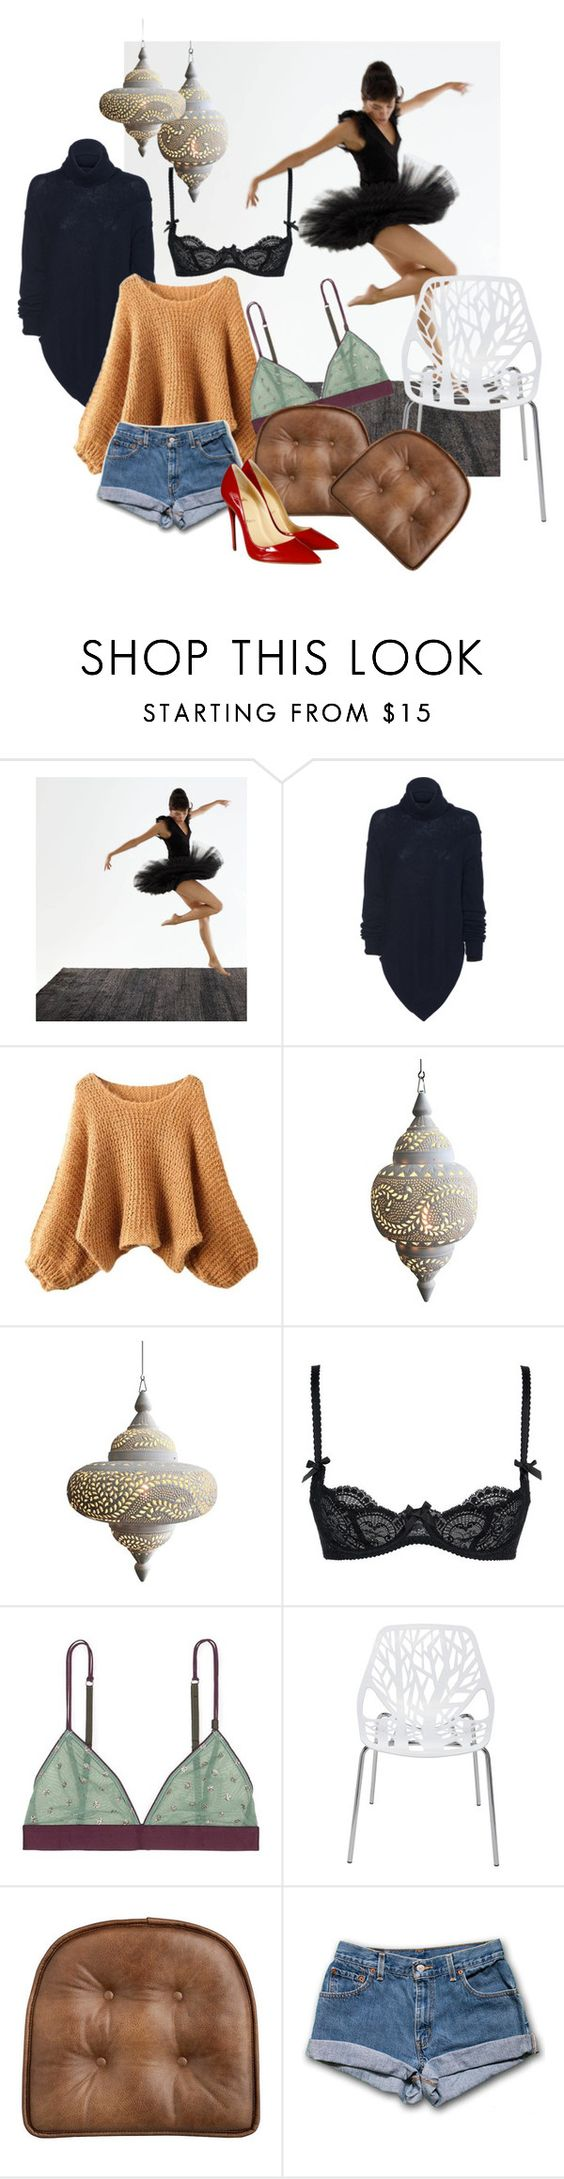 FtR by dodo85 on Polyvore featuring LoveStories, L'Agent By Agent Provocateur, Christian Louboutin and Nuevo